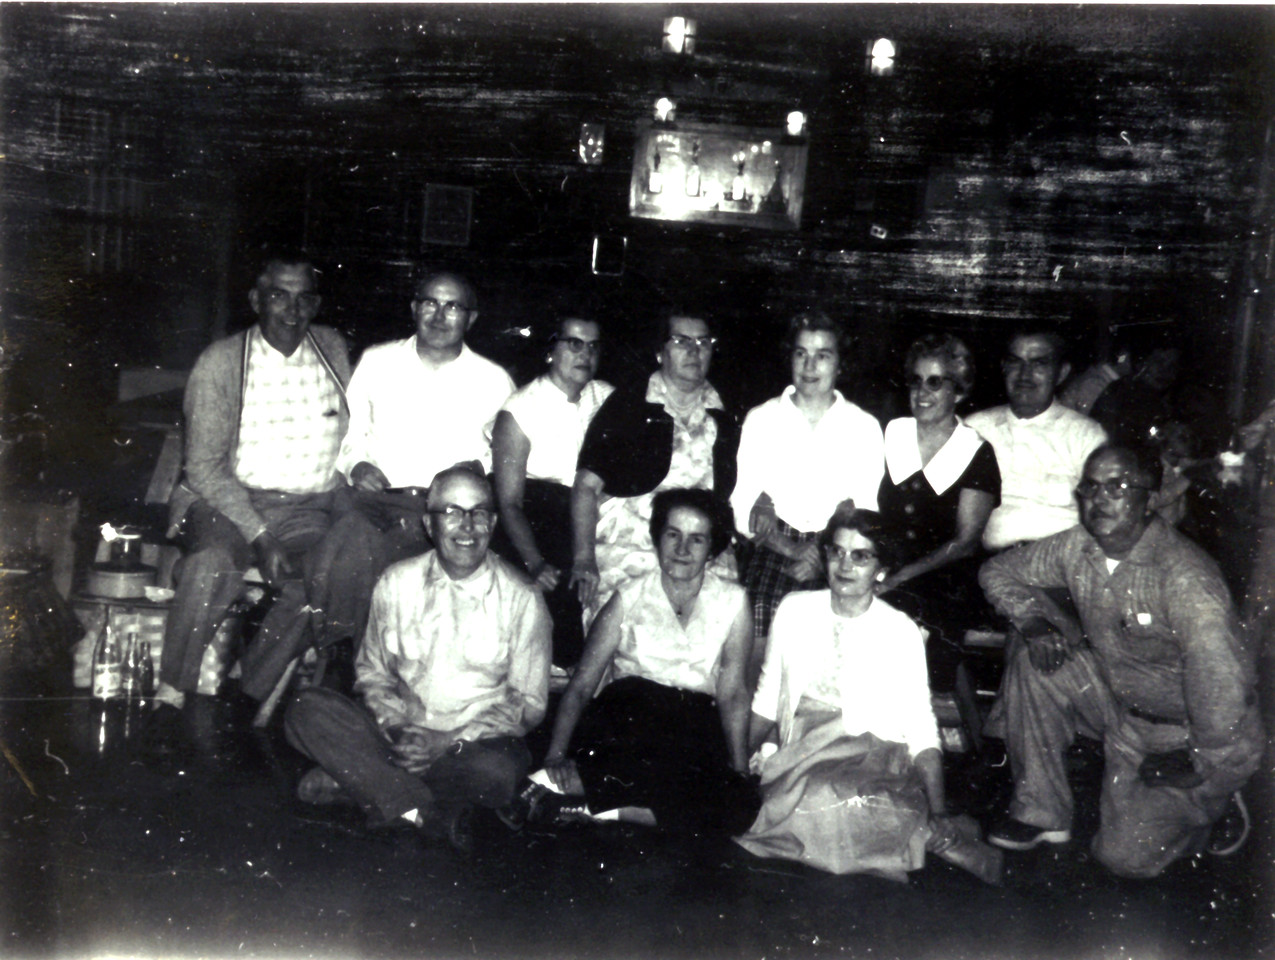 This is the last photo of all siblings together - taken at the Al Quaal clubhouse<br /> William, Arthur, Agnes, Jennie, Ruth, Florence, Malcolm<br /> Norman, Margaret, Borghild, Herbert